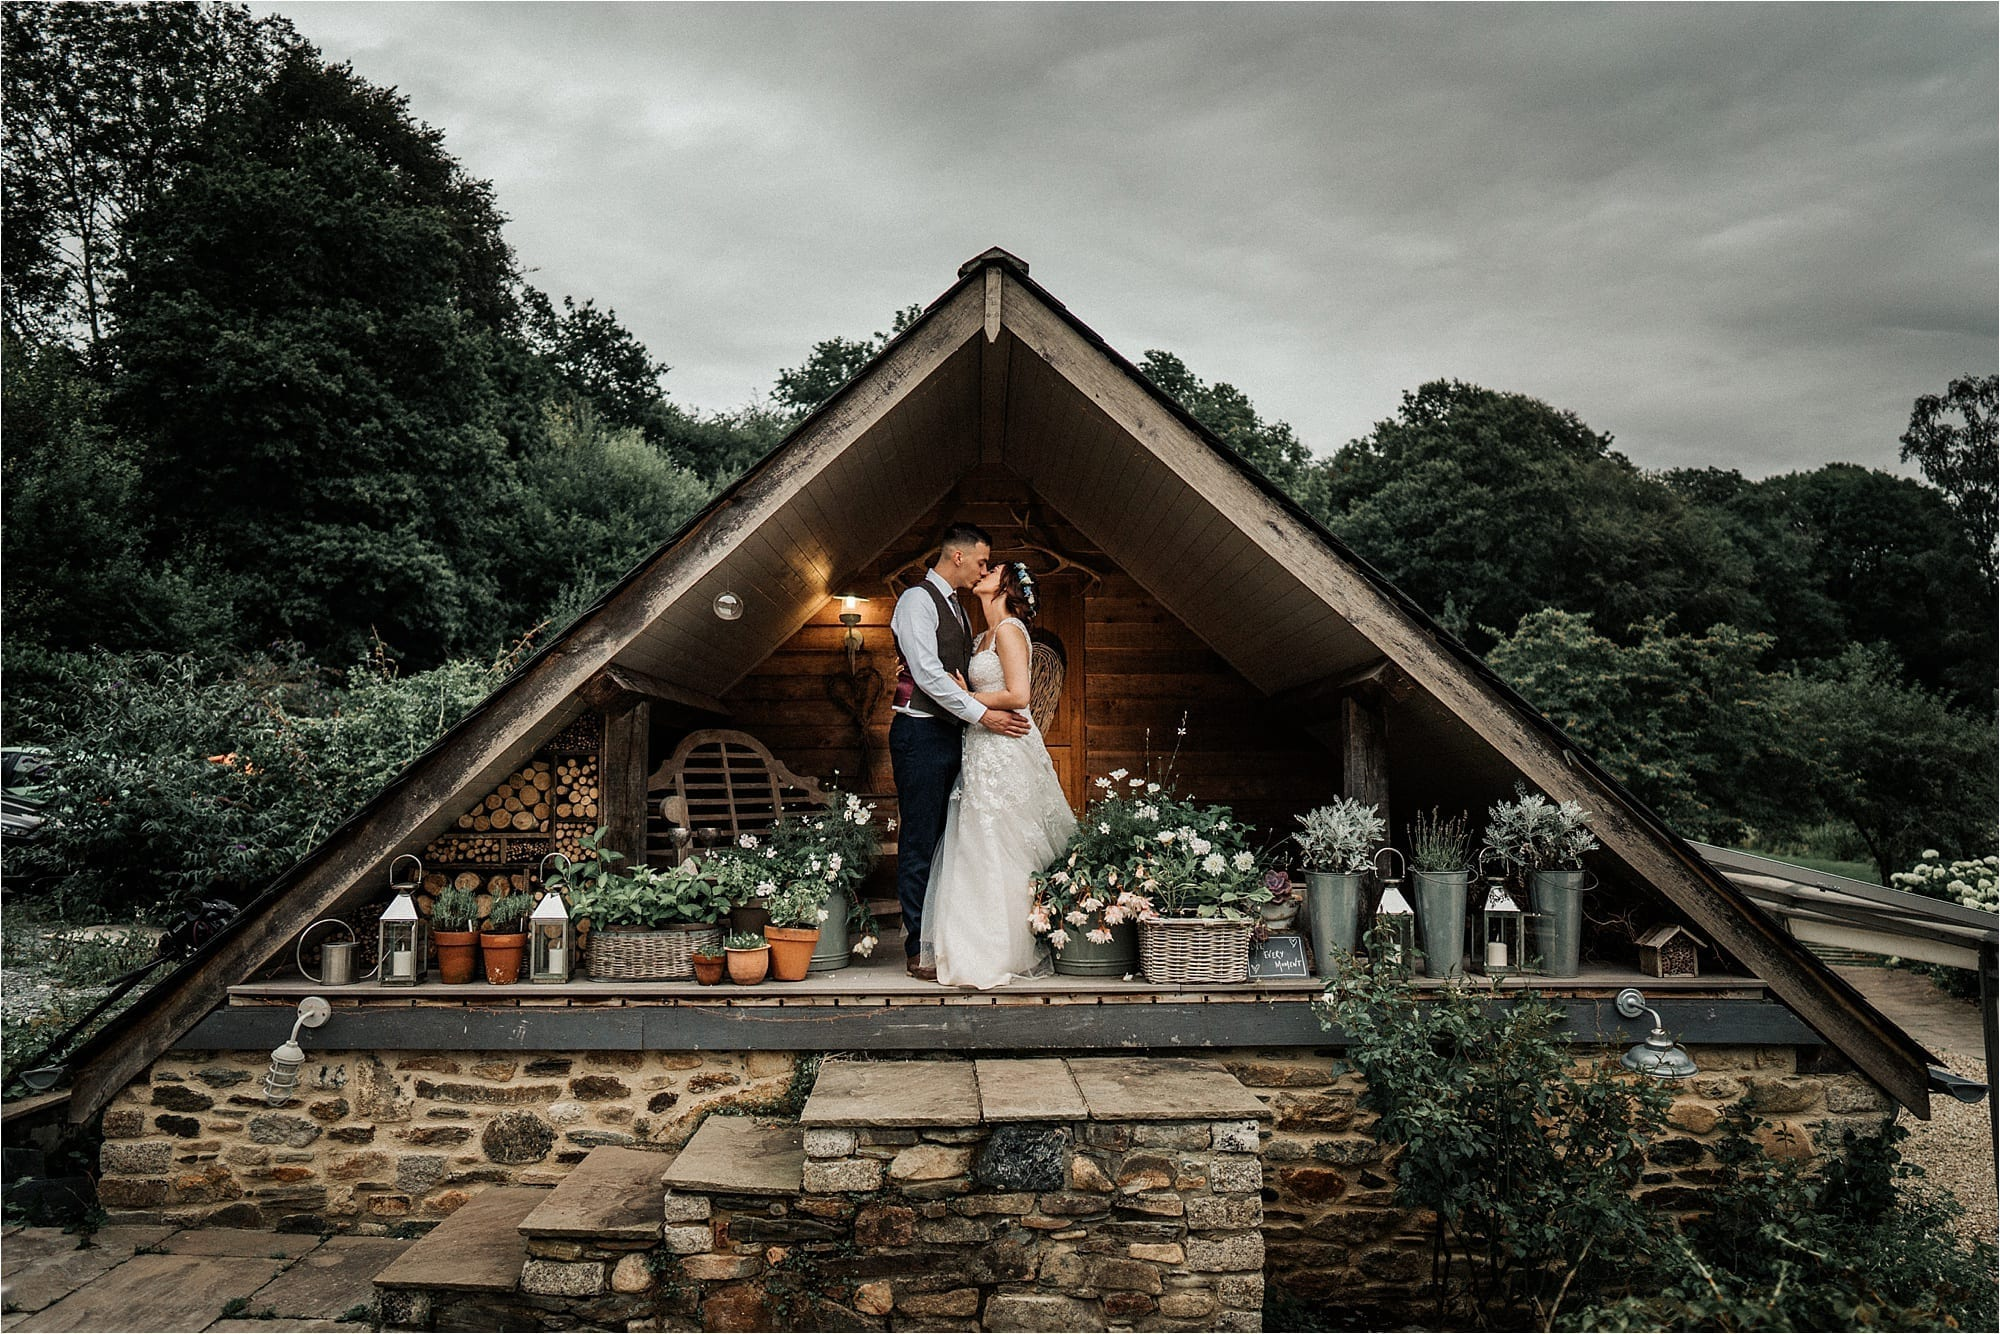 The Ever After wedding photographer